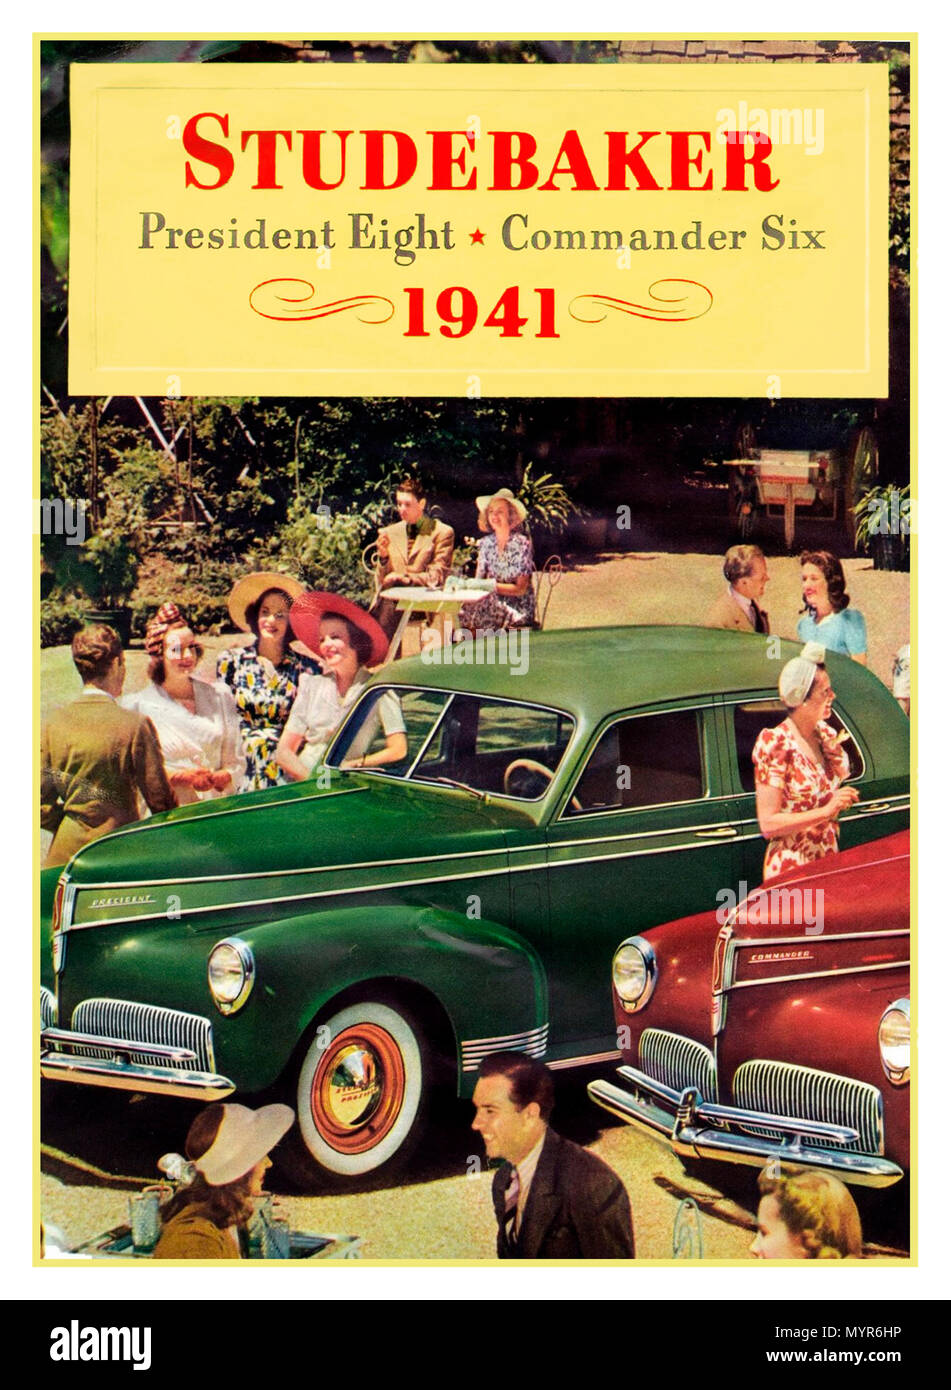 Vintage 1941 American Automobile poster press advertisement for 'The Studebaker President Eight' 'Commander Six'  the premier automobile model manufactured by the Studebaker Corporation of South Bend, Indiana (US) from 1926-1942, the President received a new body style, a four-door sedan with rear-opening rear doors - Stock Image